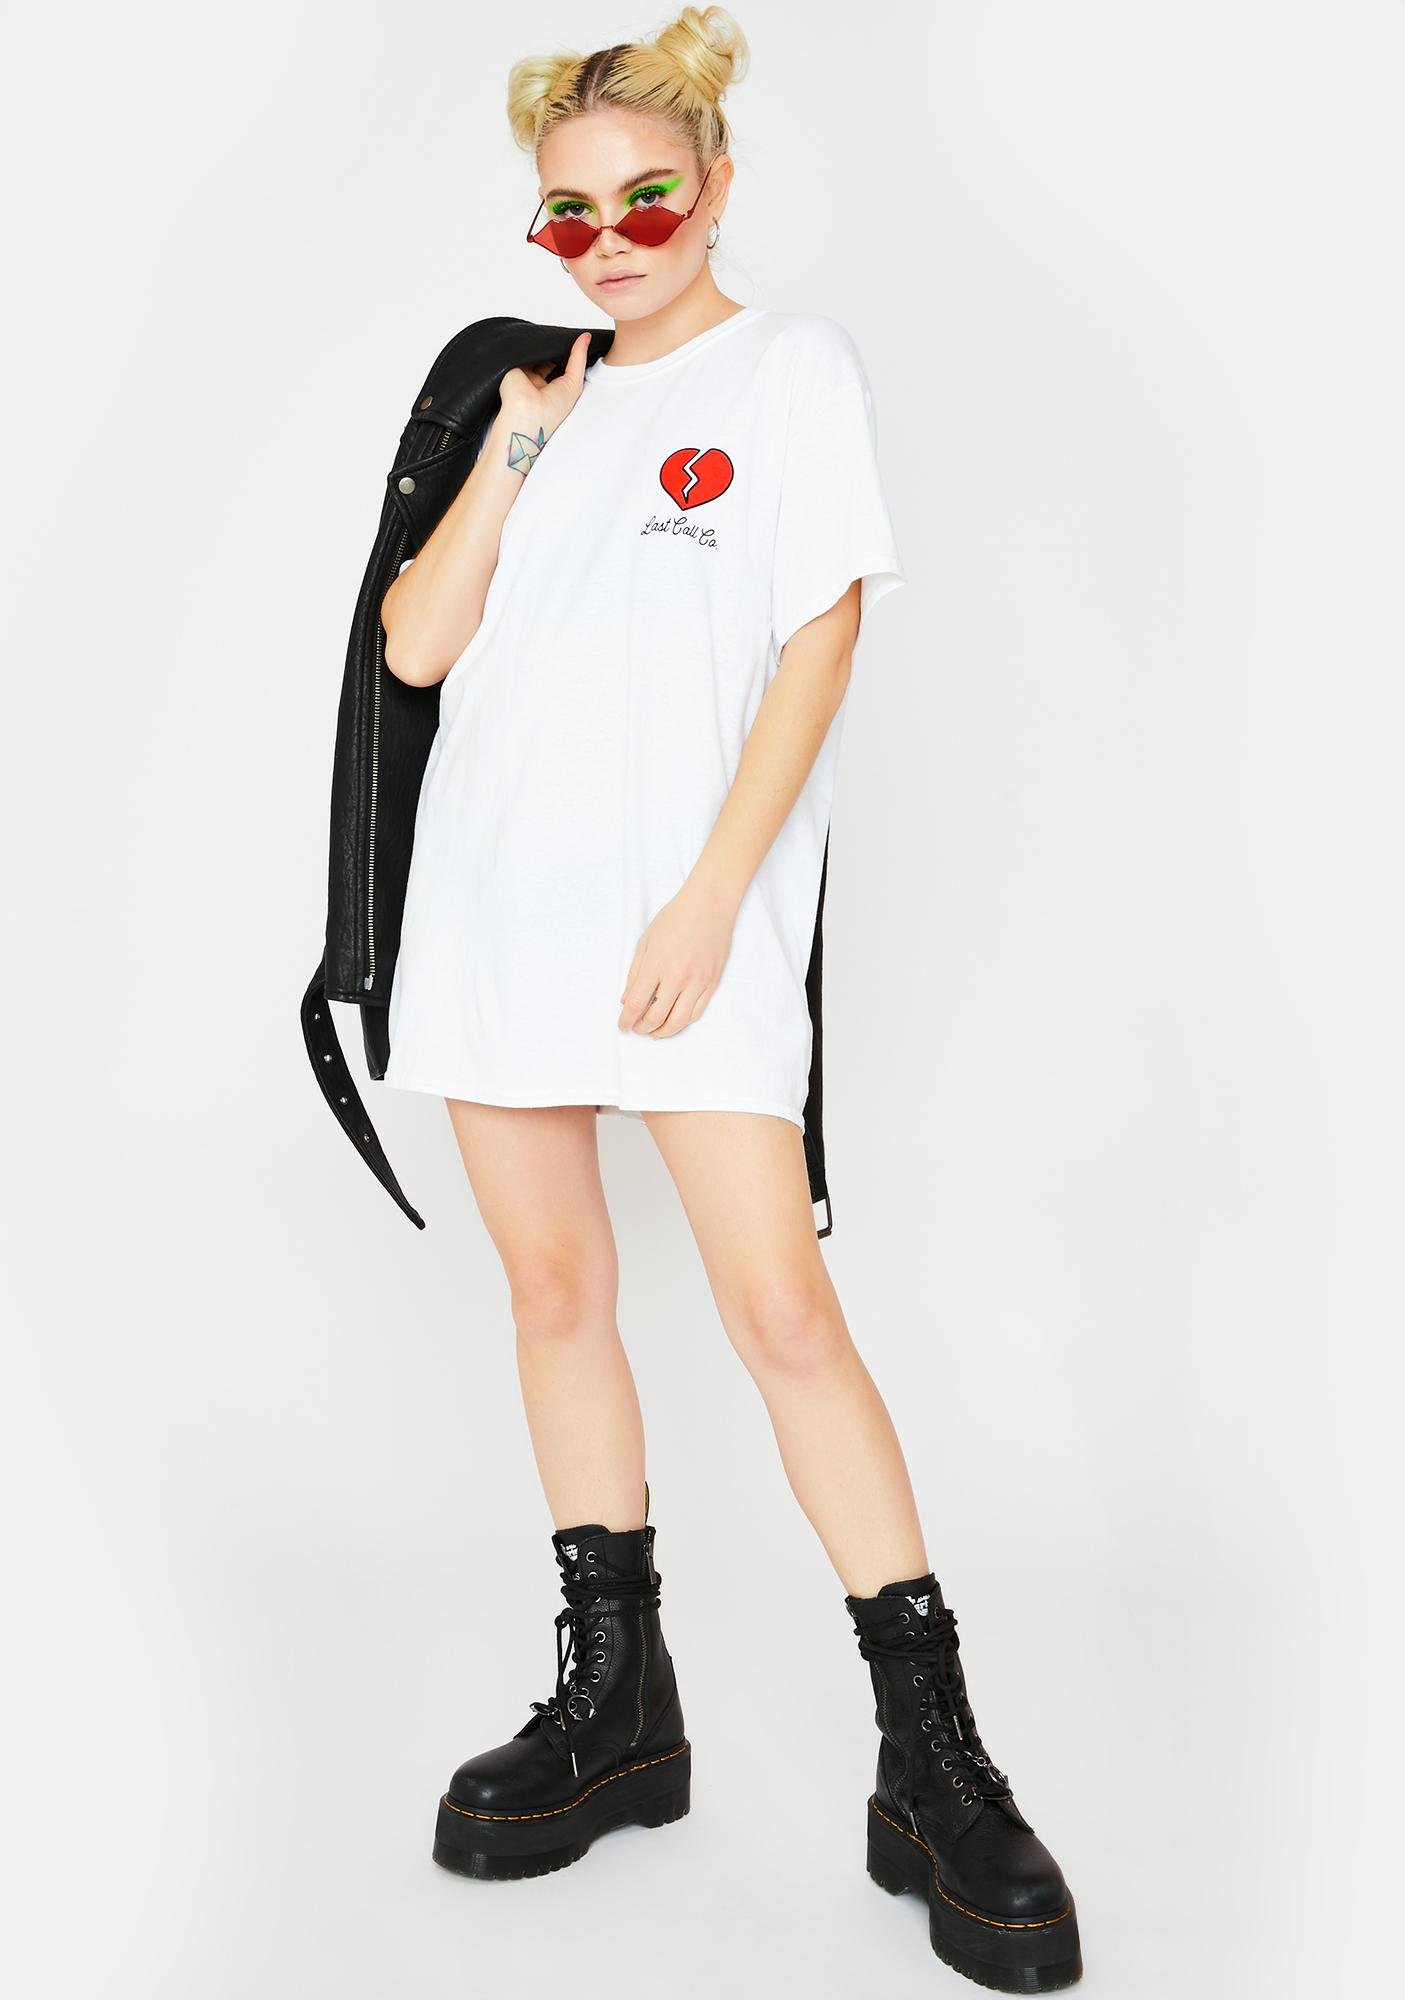 Last Call Co. Boots Graphic Tee